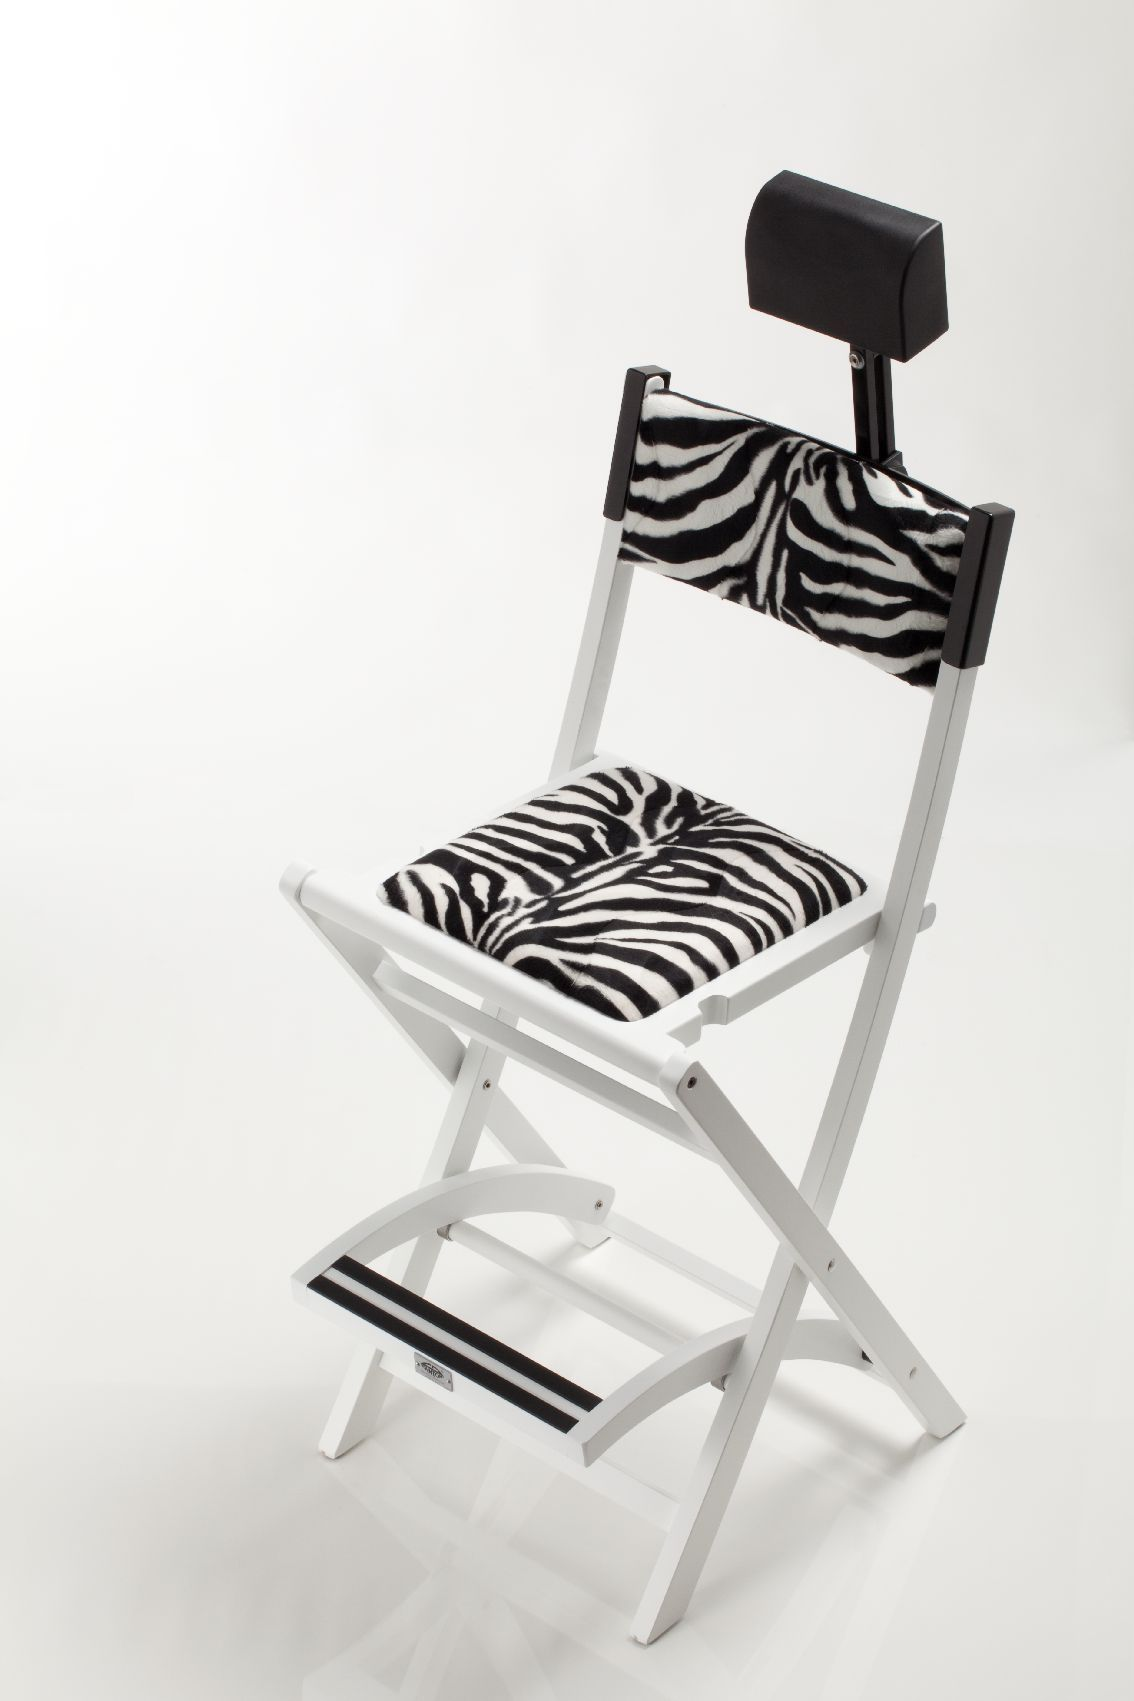 Makeup Chairs For Professional Artists Wingback Chair Covers Sale S104 The Black Make Up With Unique